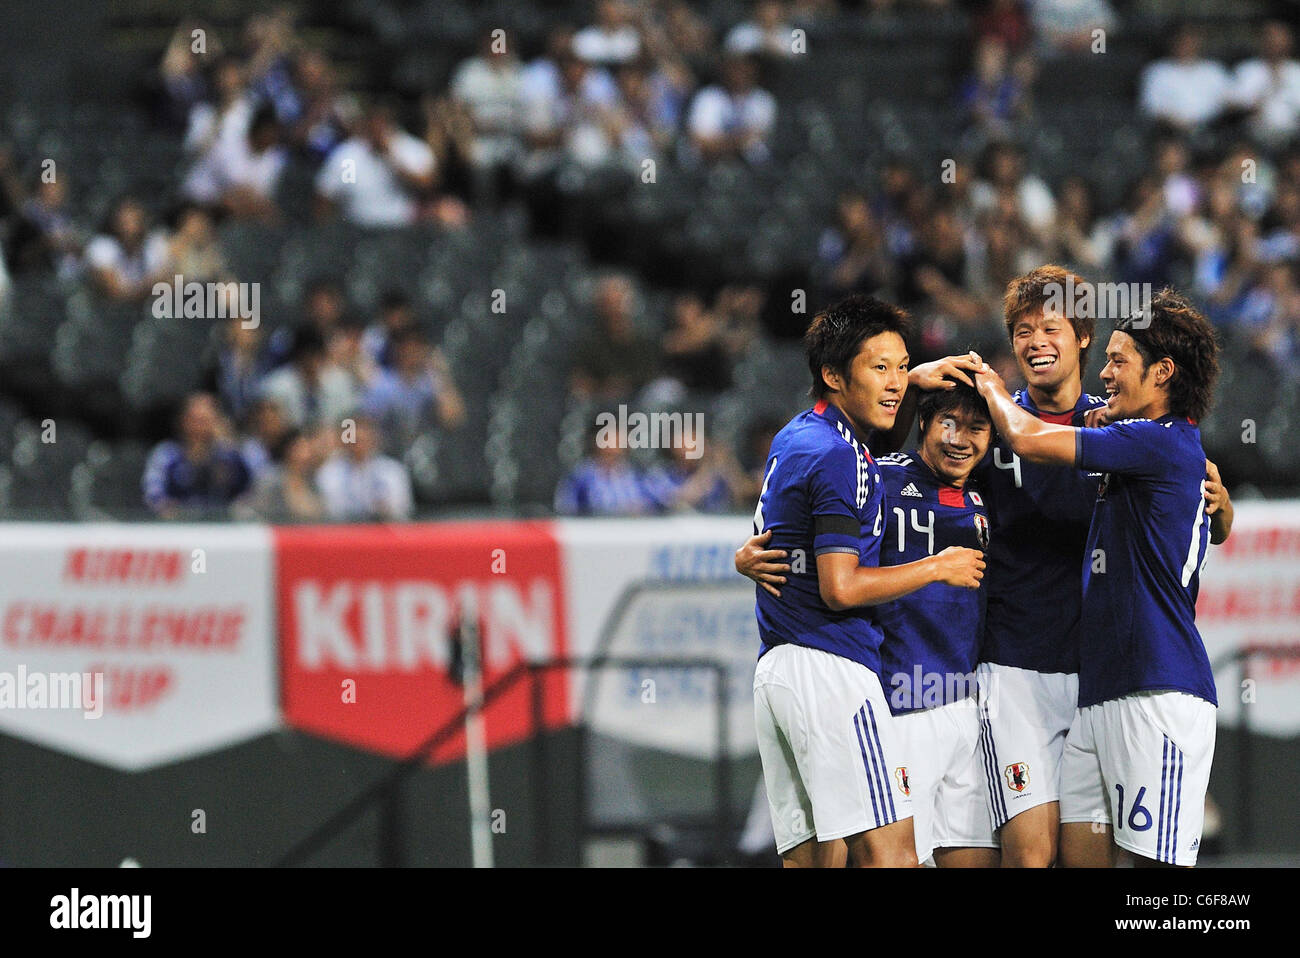 Japan team group celebrating their point for  the international friendly match between Japan 2-1 Egypt. - Stock Image